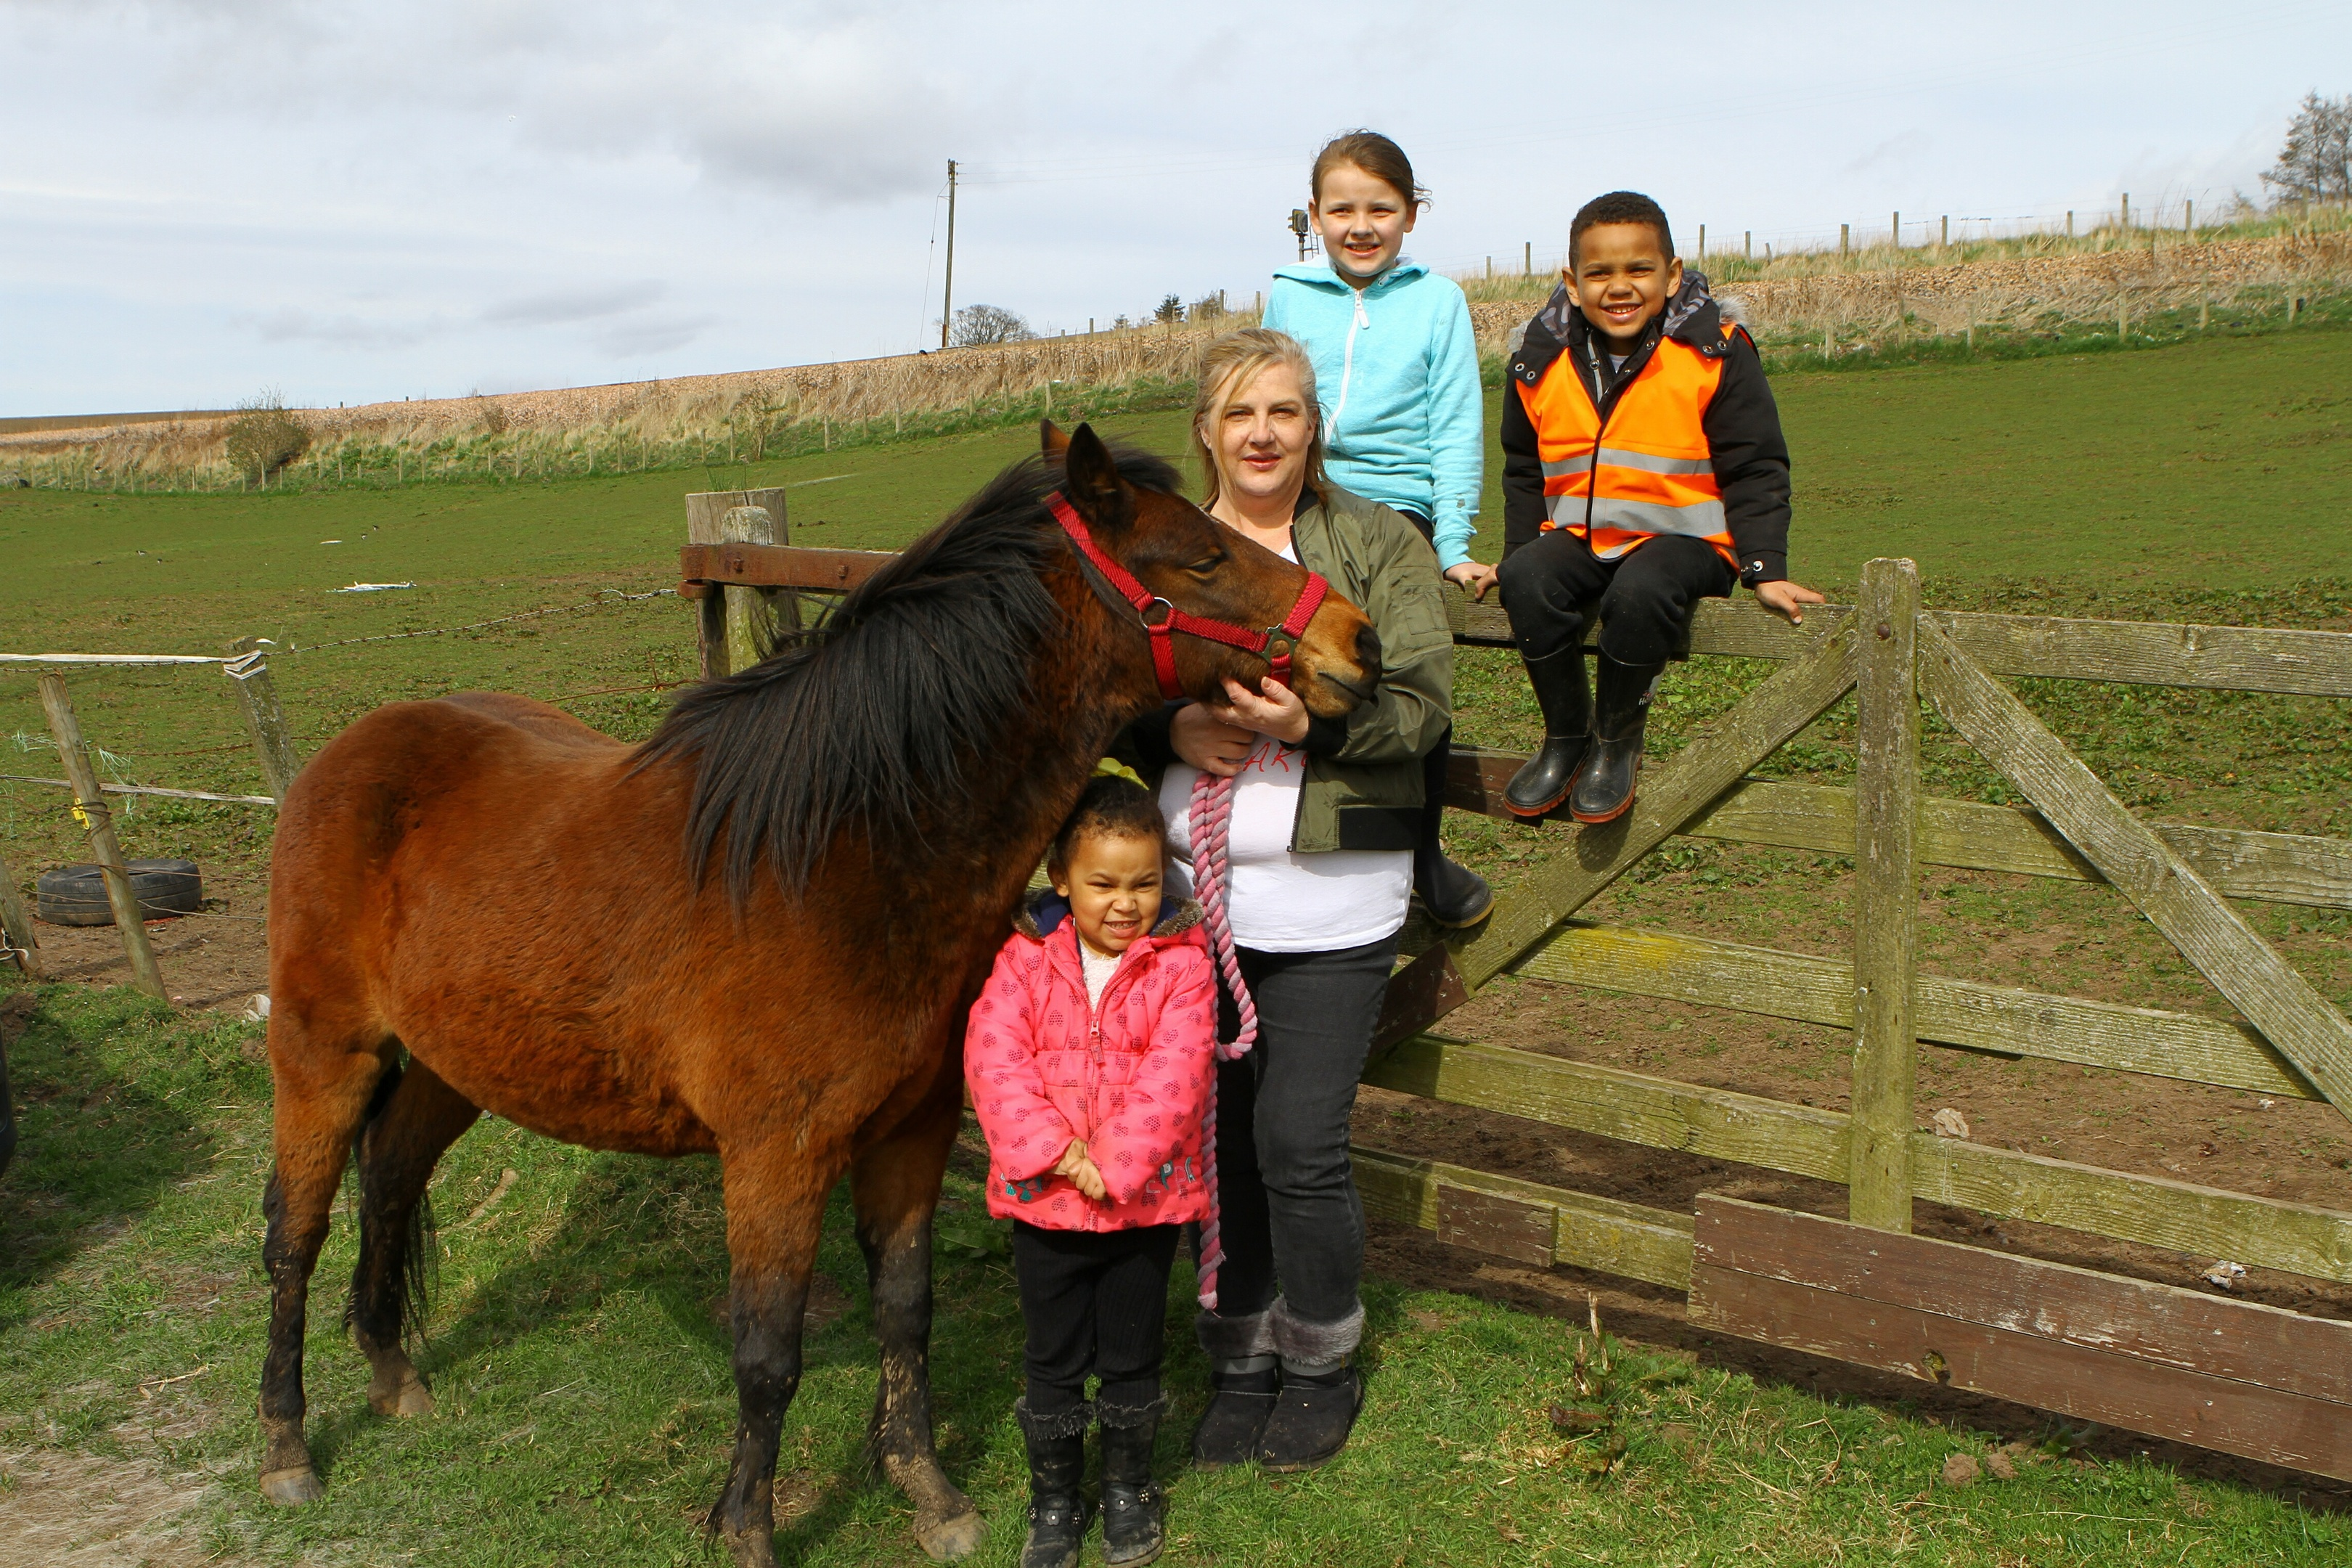 Wendy Robb with one of the horses Orchid, and helpers, Mya-Lynn Koffi (front) and Jasmine Dogan and Curtis Koffi, at the fields near Letham Mill, Arbroath.